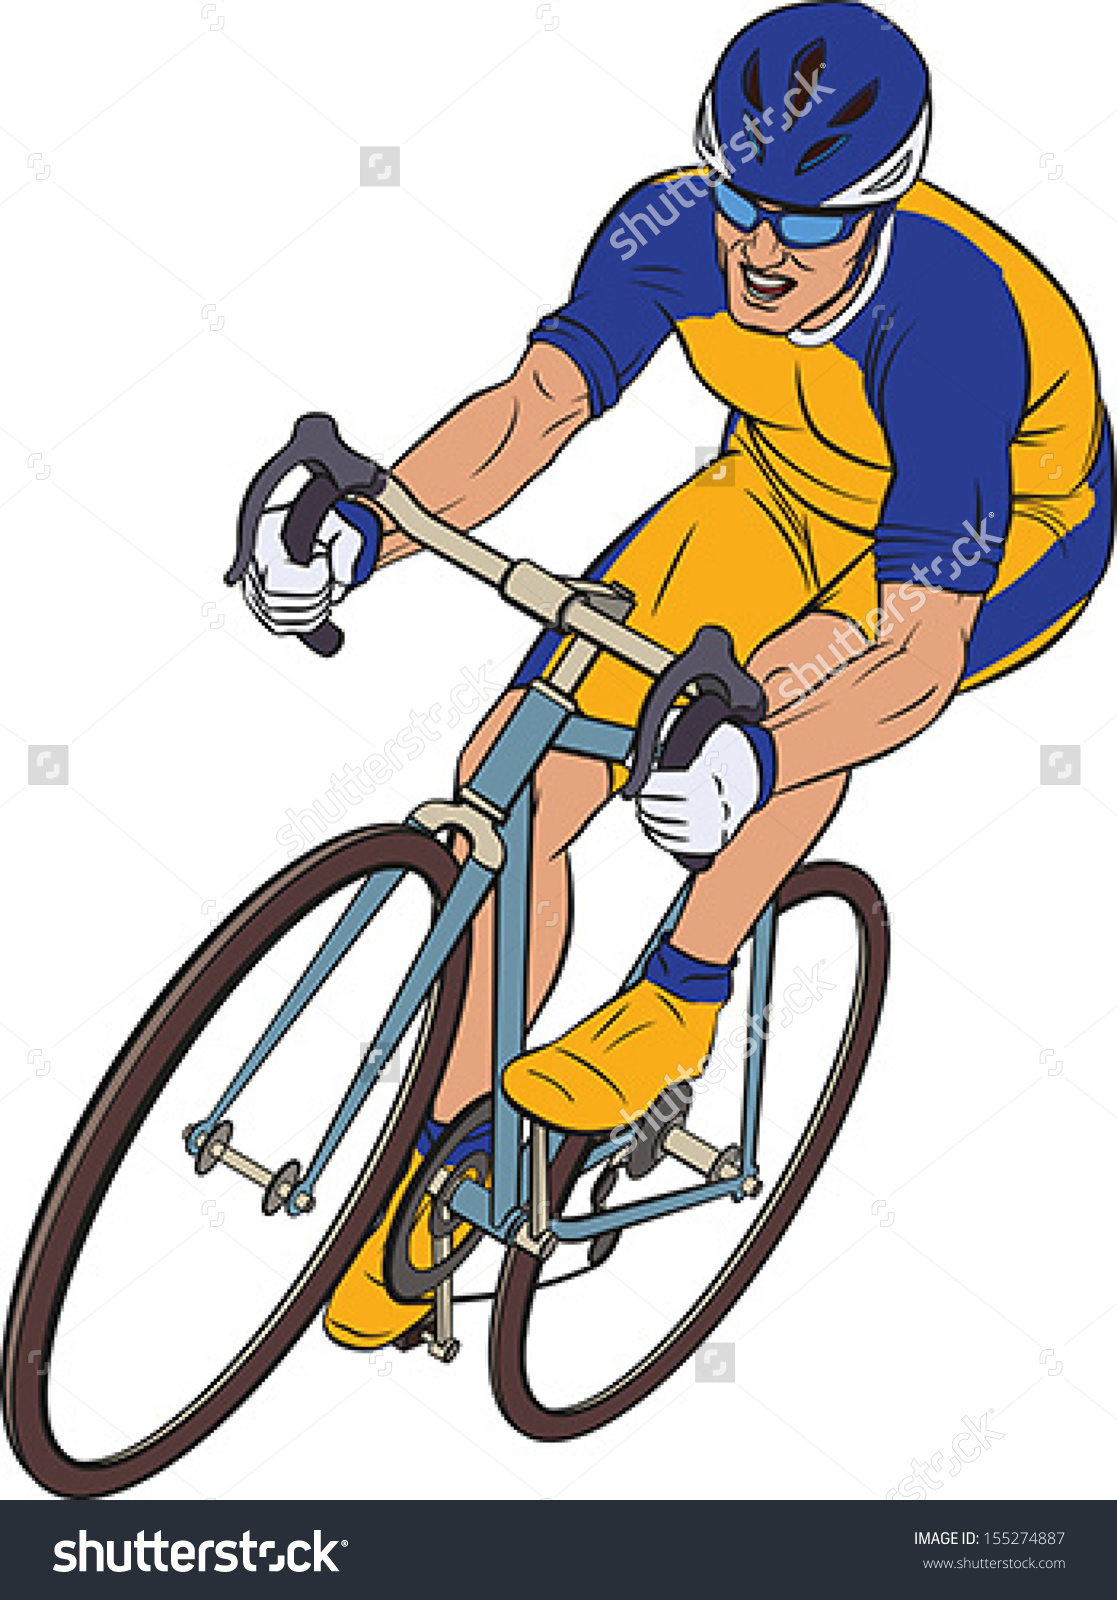 Bicycle Race Clipart.